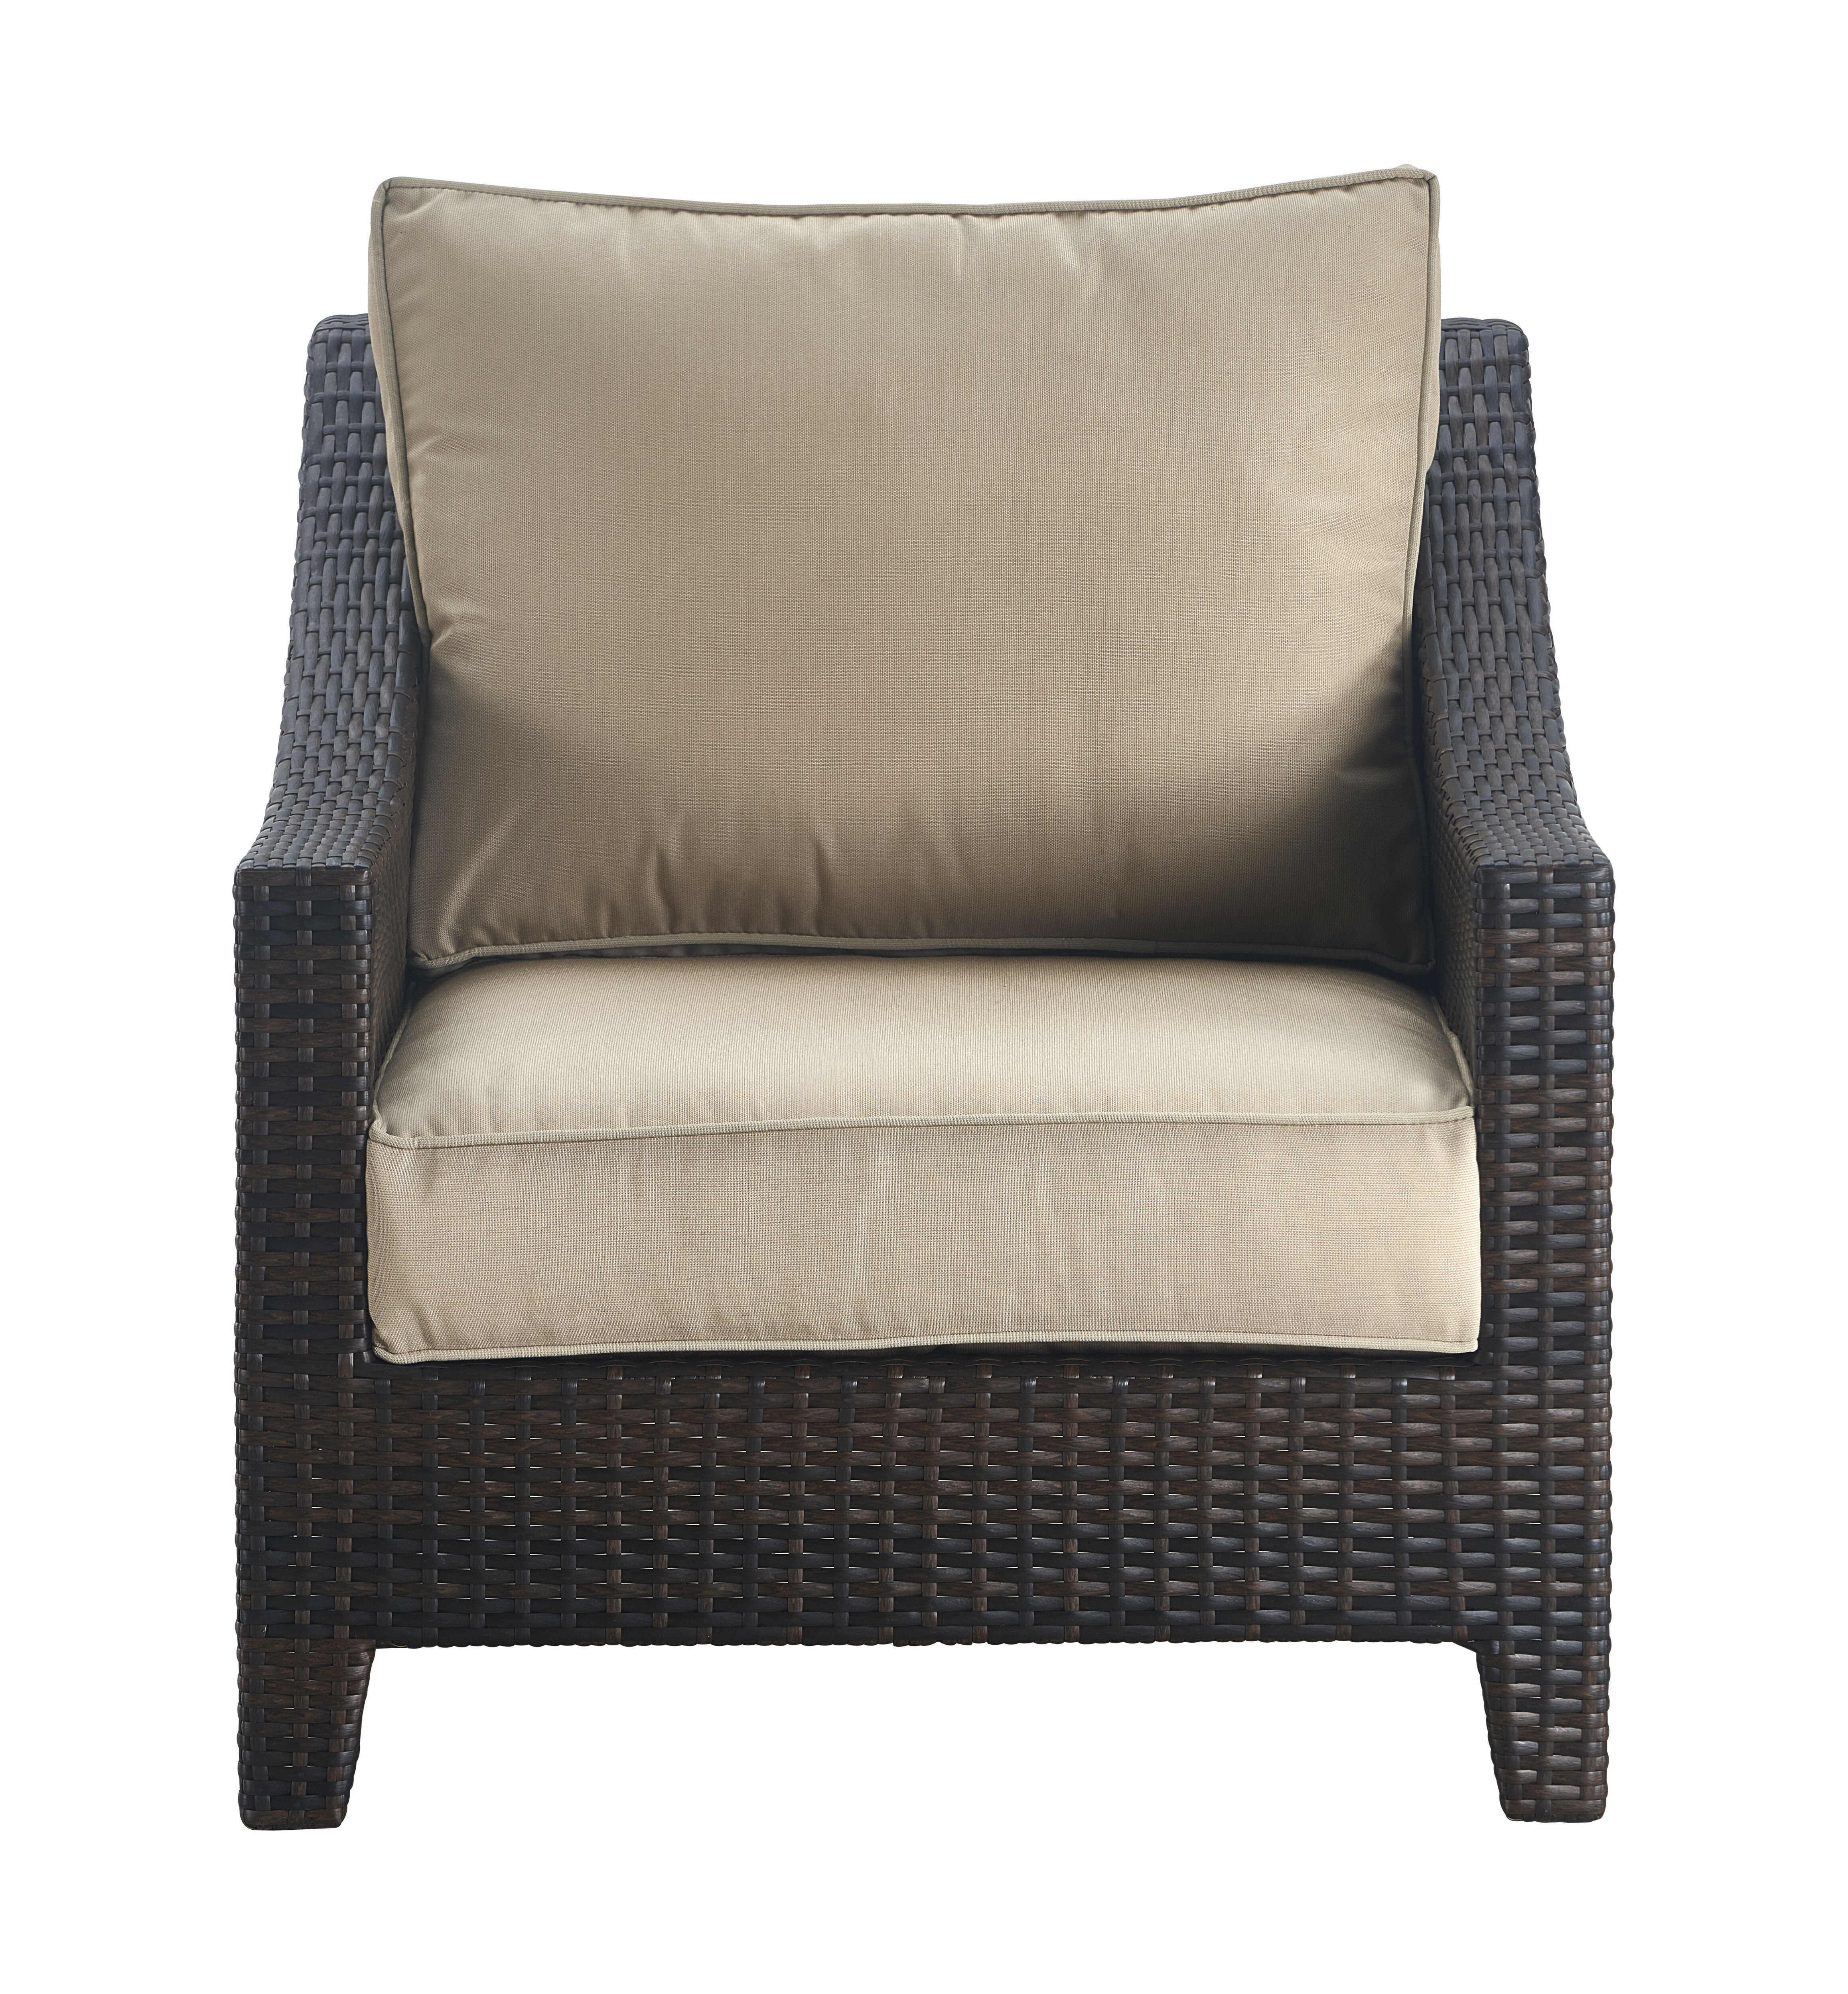 Serta At Home Tahoe Outdoor Wicker Patio Chair With Cushions | Wayfair